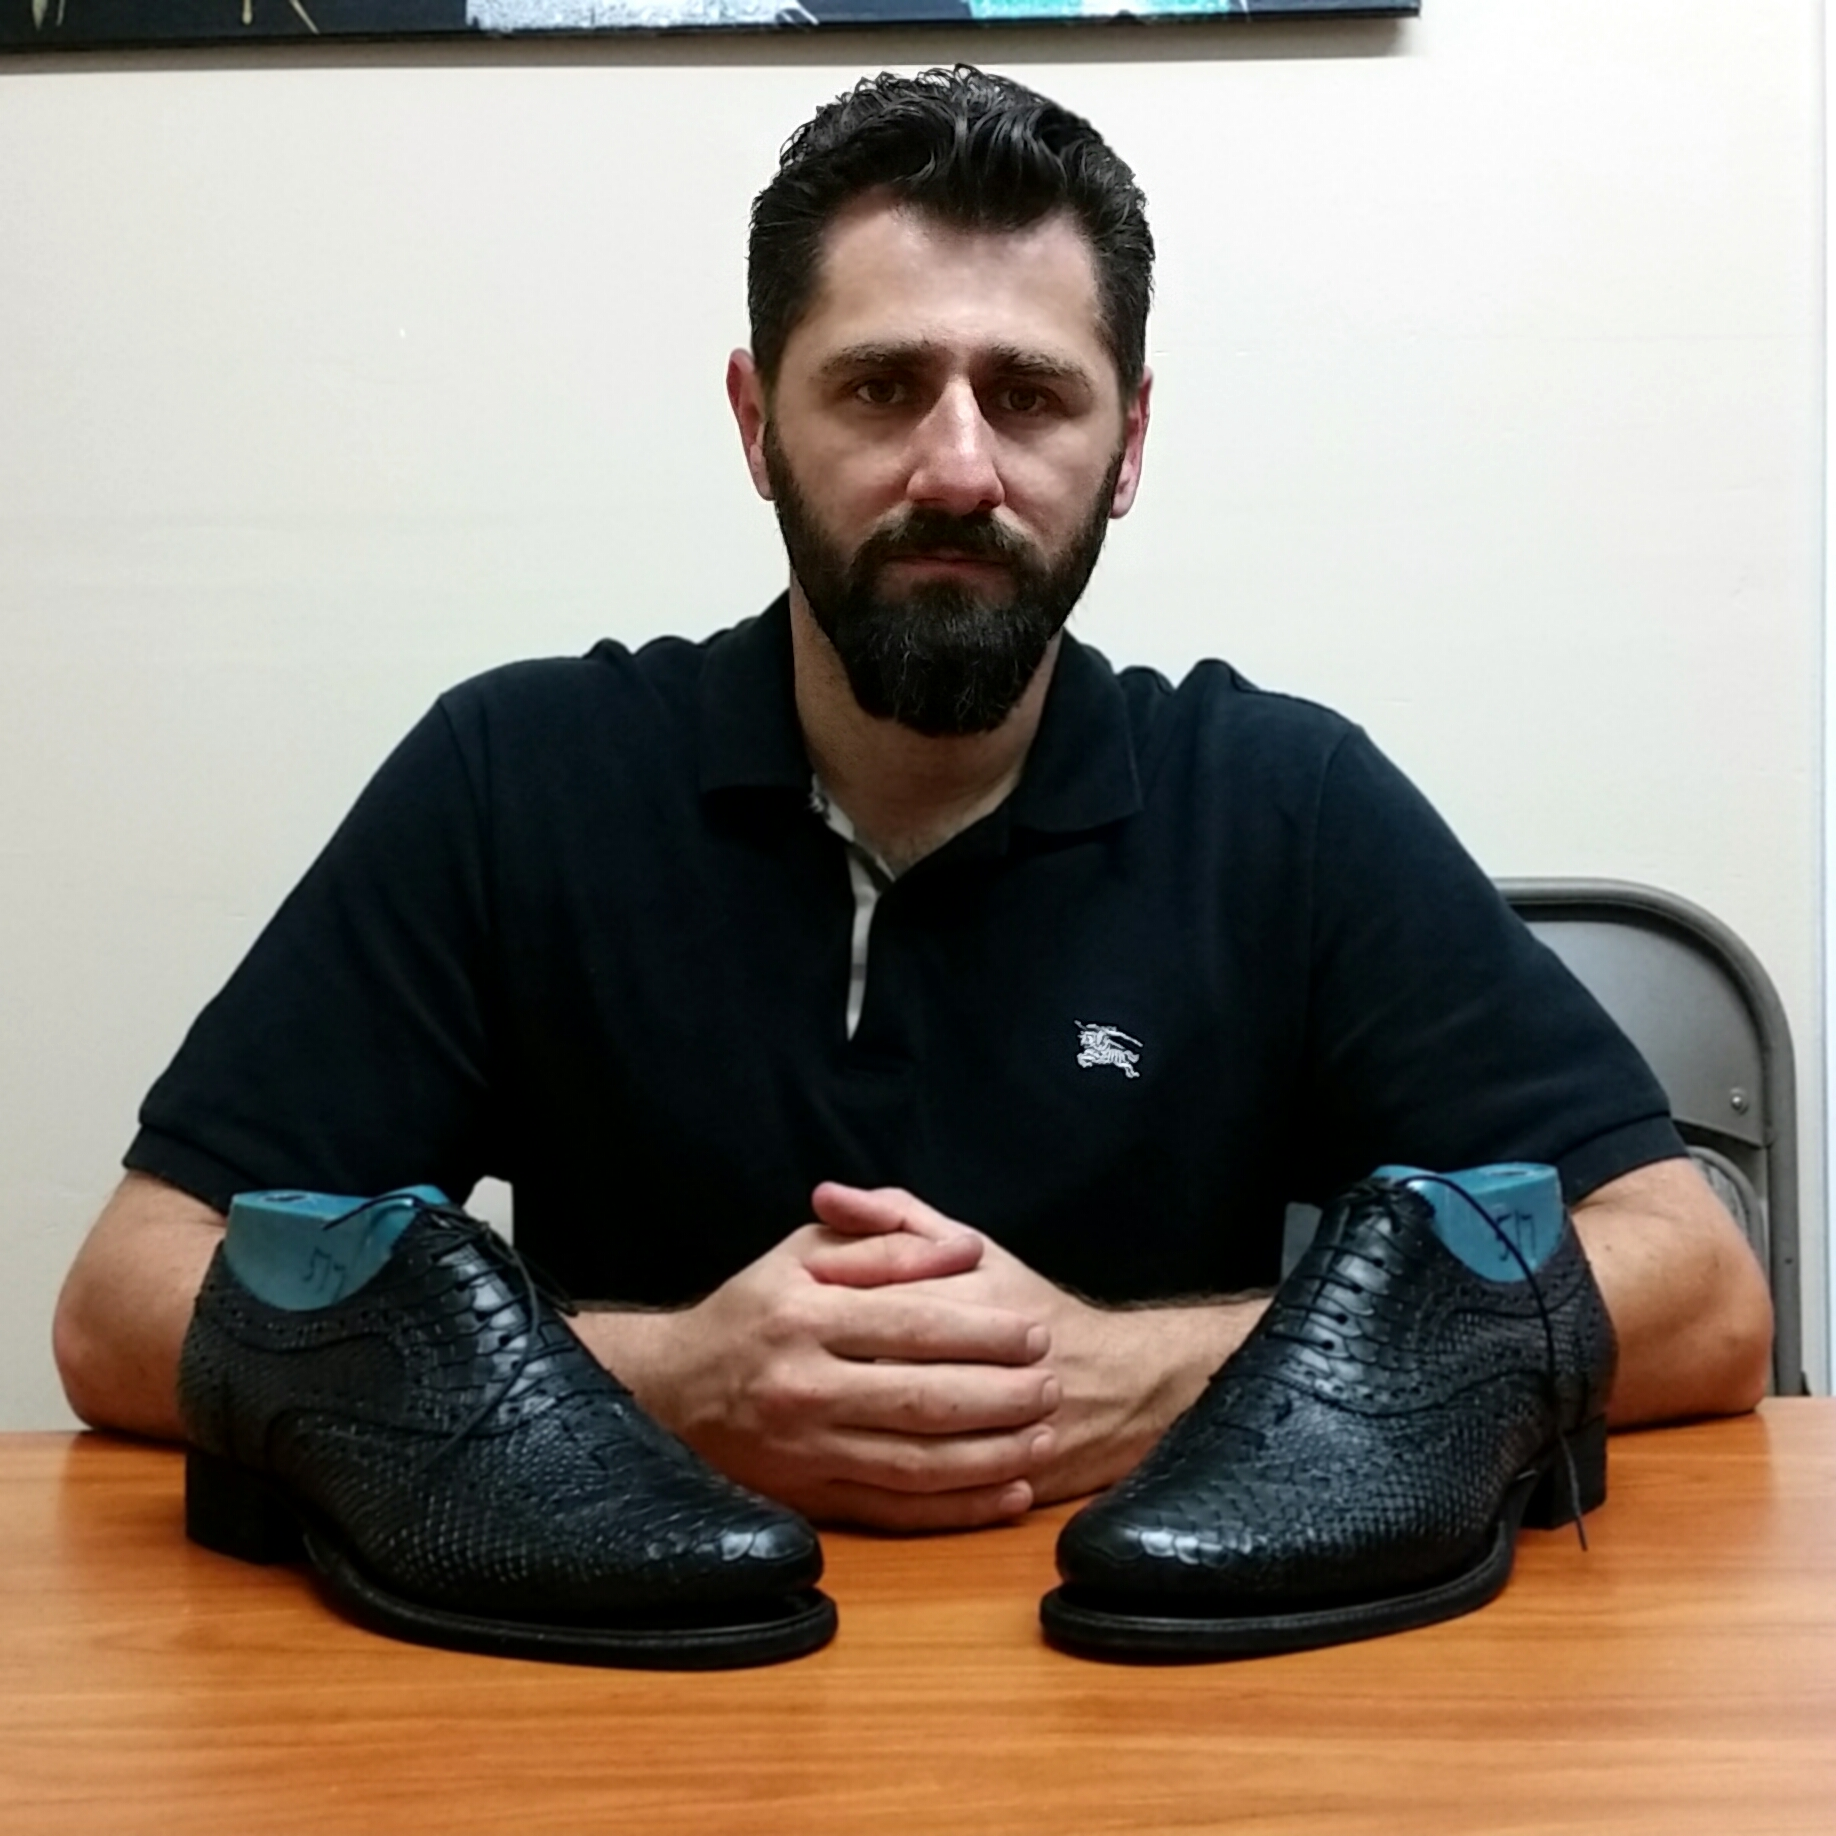 Owner of Crown Dance Shoes